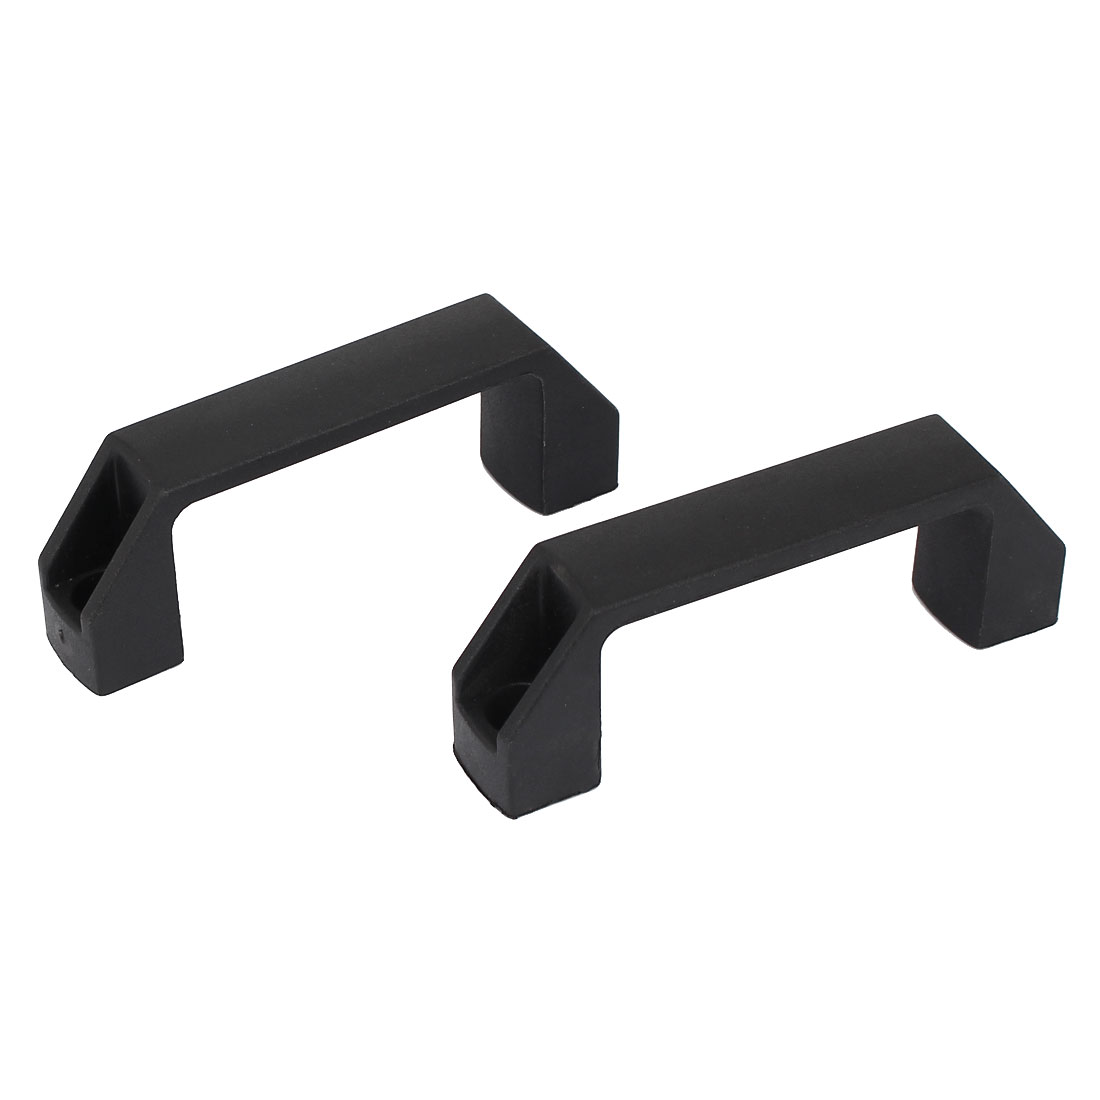 "2pcs 4.2"" Long Rectangle Plastic Pull Handle Knob Black for Cabinet Closet"